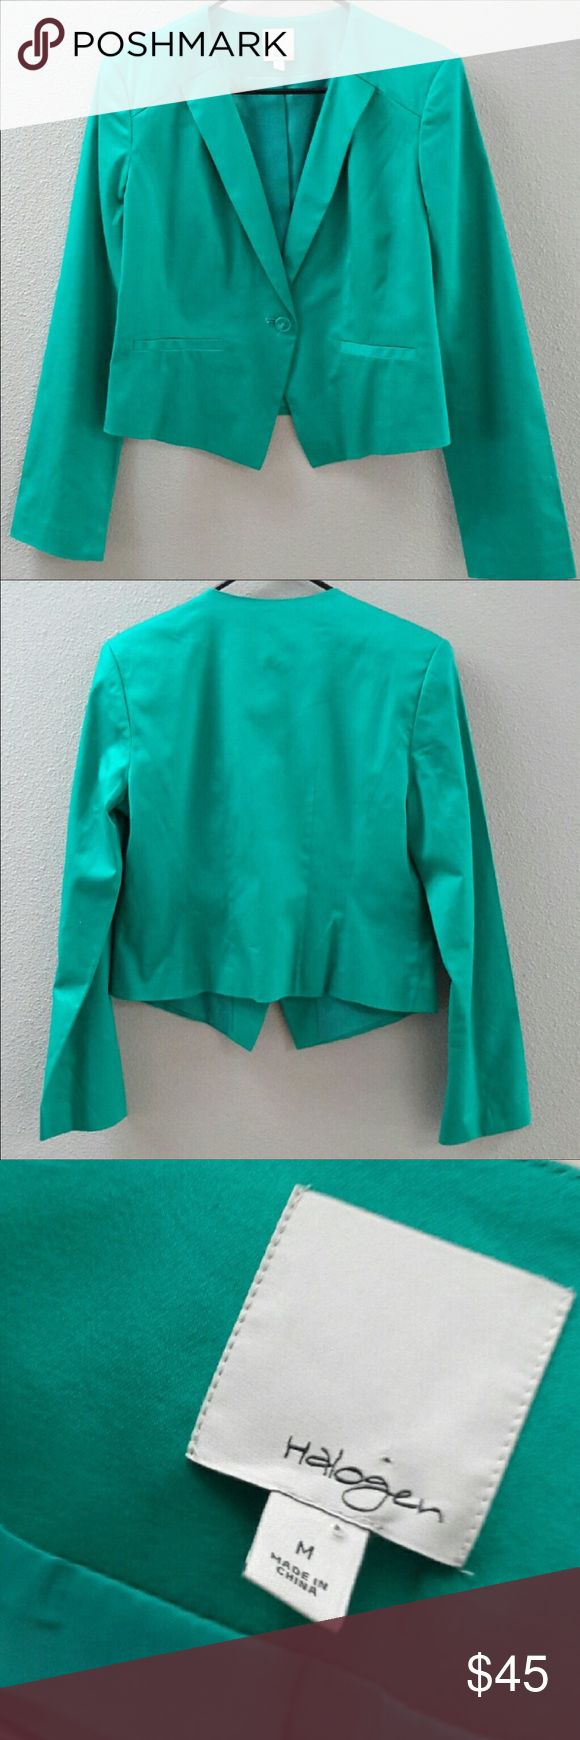 Halogen turquoise blazer Halogen (a Nordstrom brand) turquoise blazer • Mint condition! • BEAUTIFUL color! • One front button • Fully lined • Size: Medium Halogen Jackets & Coats Blazers